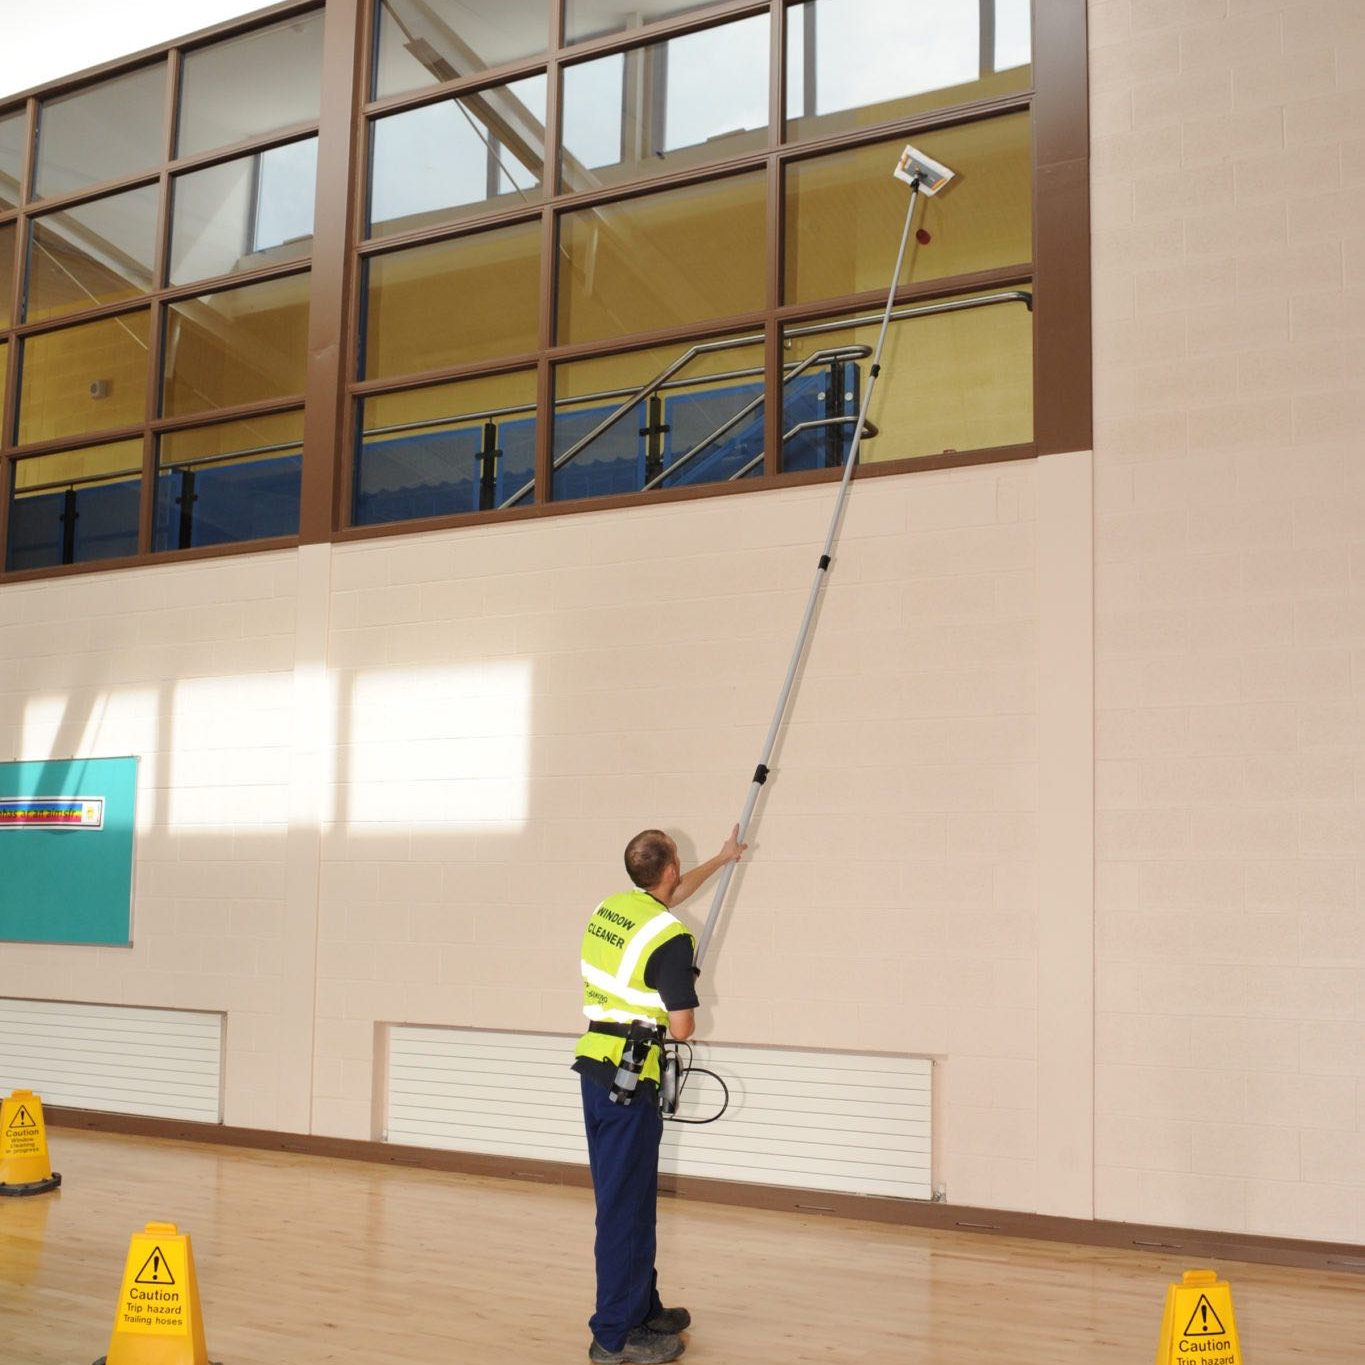 Interior window cleaning using our clever pole system